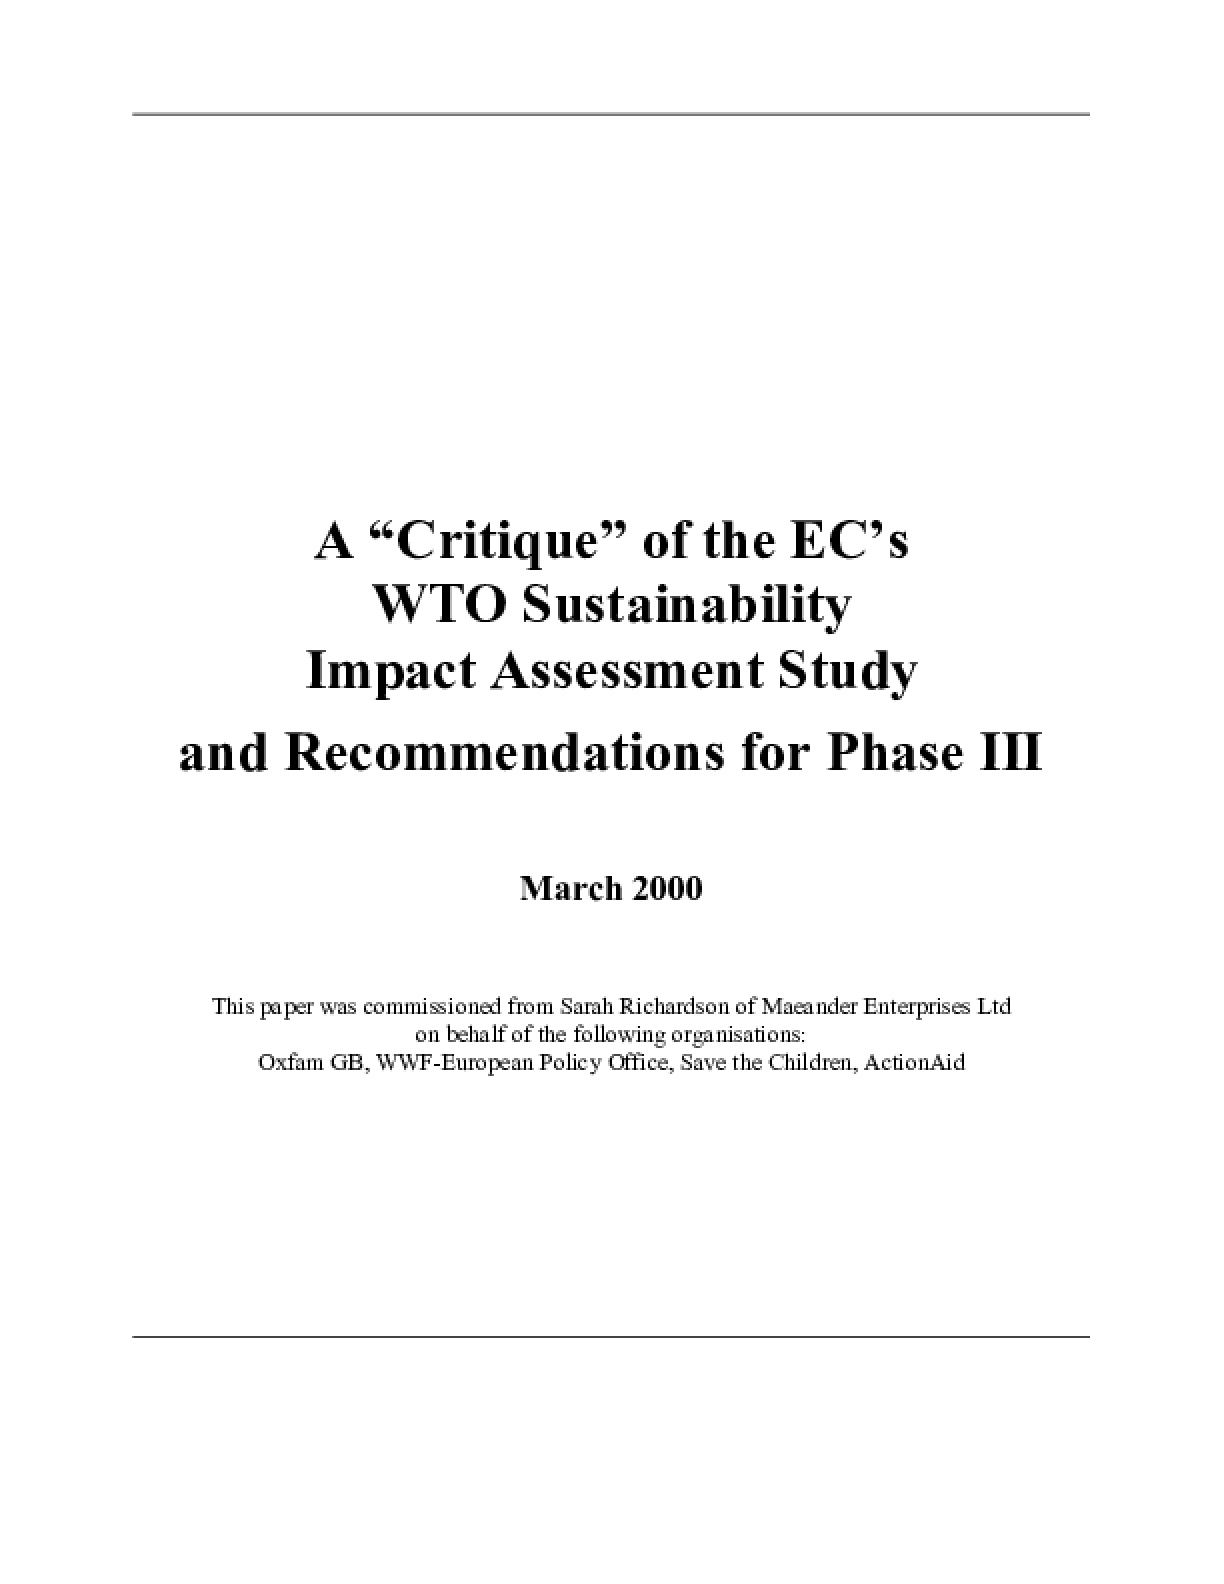 A Critique of the EC's WTO Sustainability Impact Assessment Study and Recommendations for Phase III